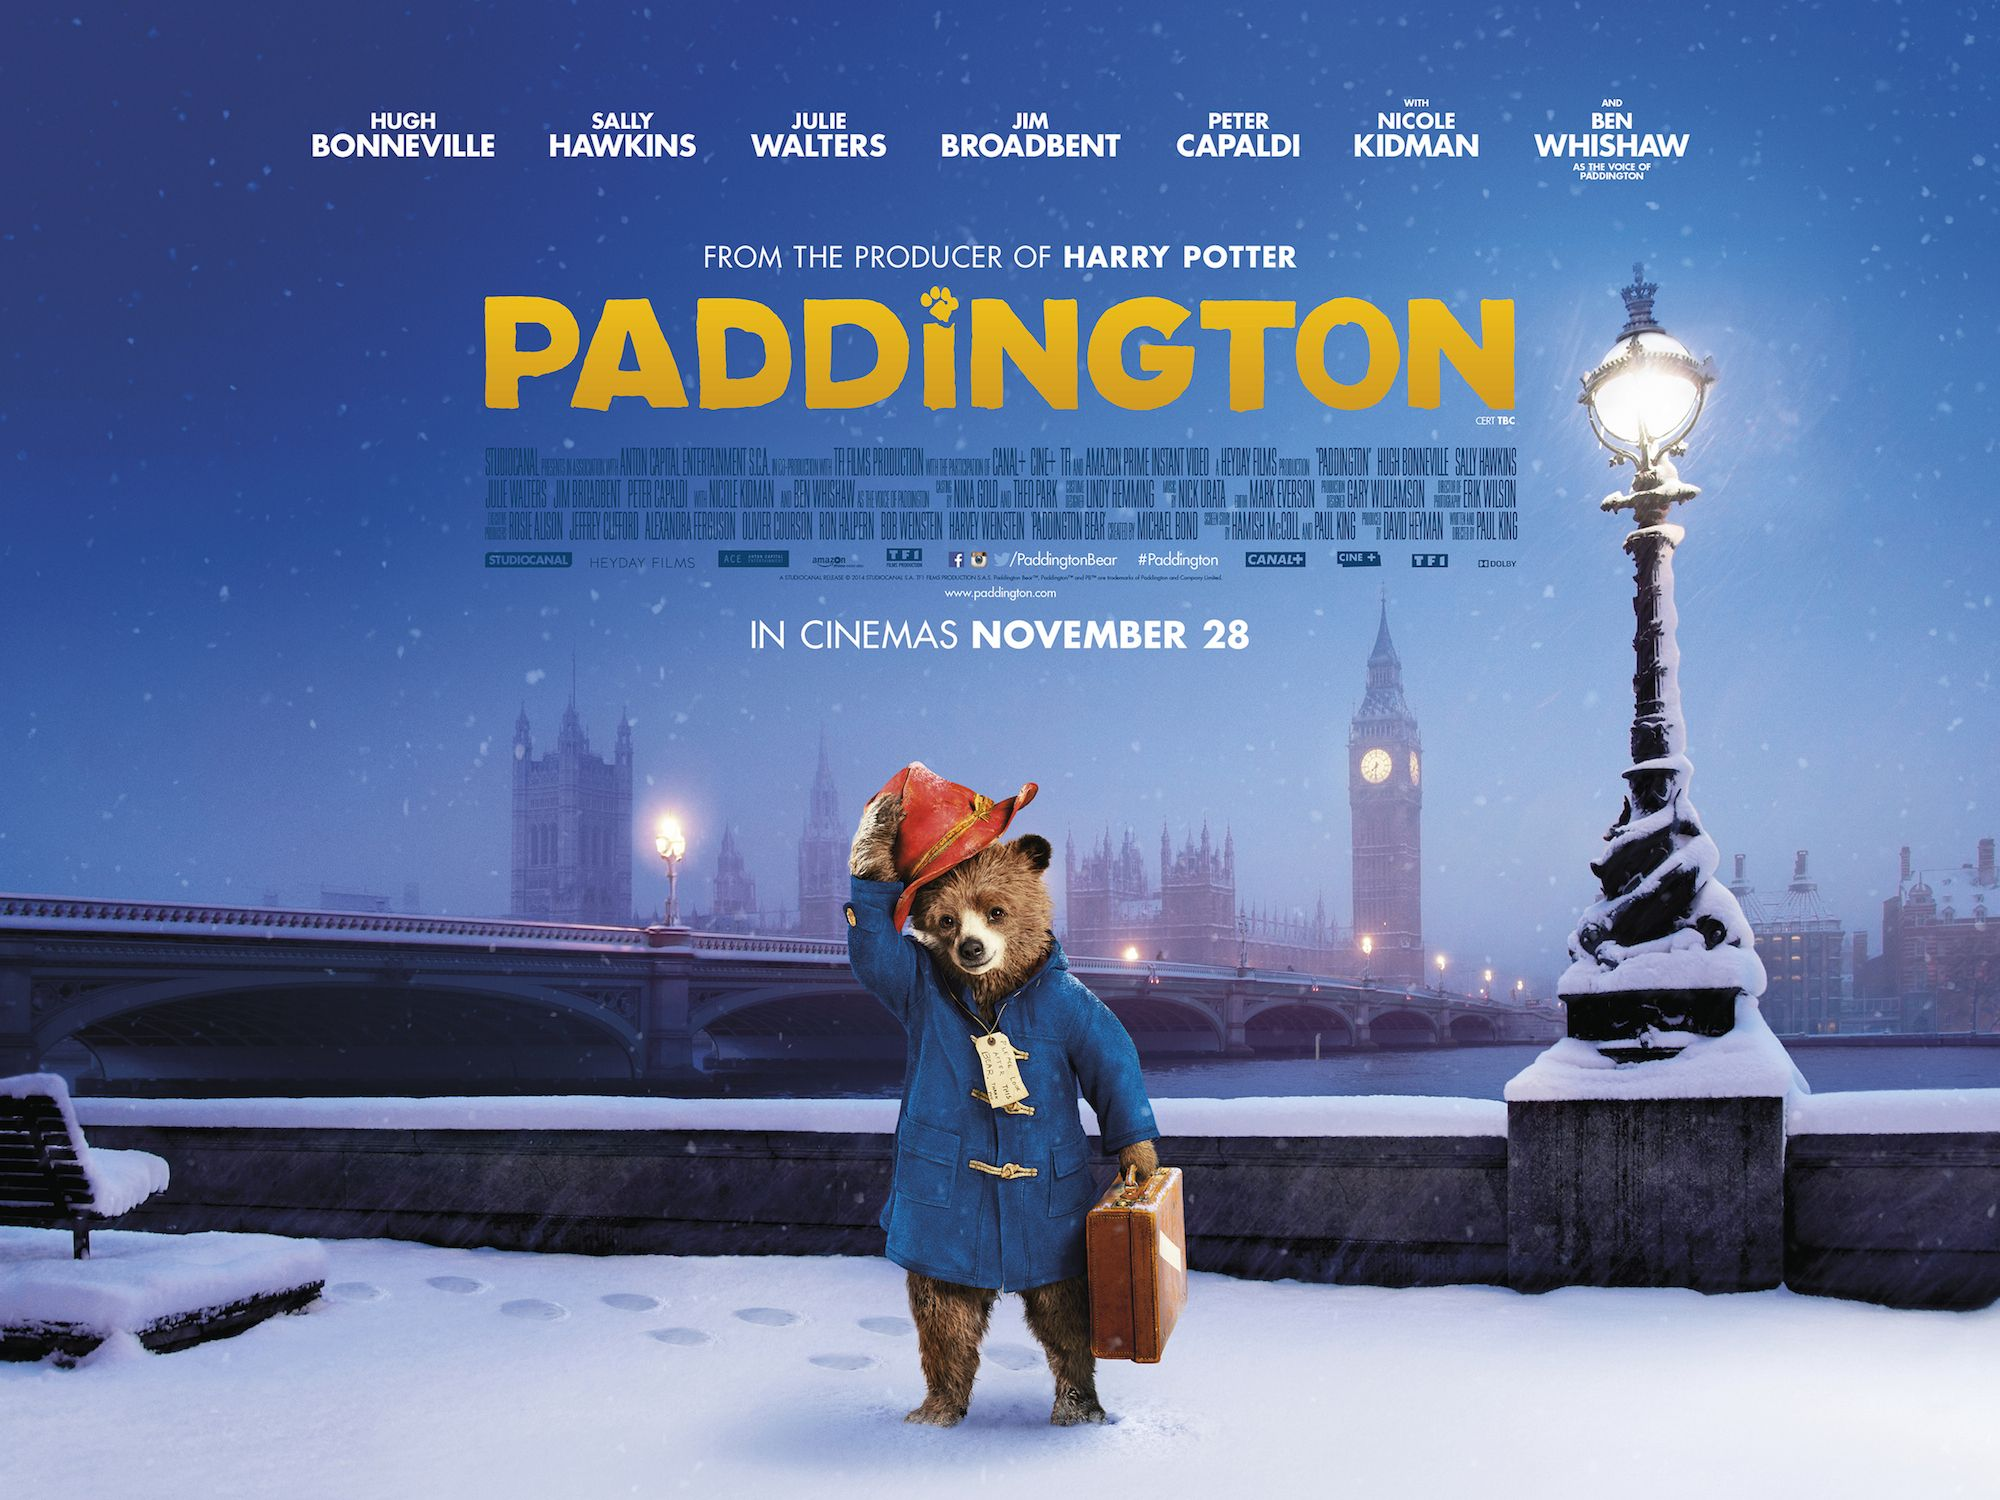 best images about Paddington on Pinterest Paddington bear | HD ...